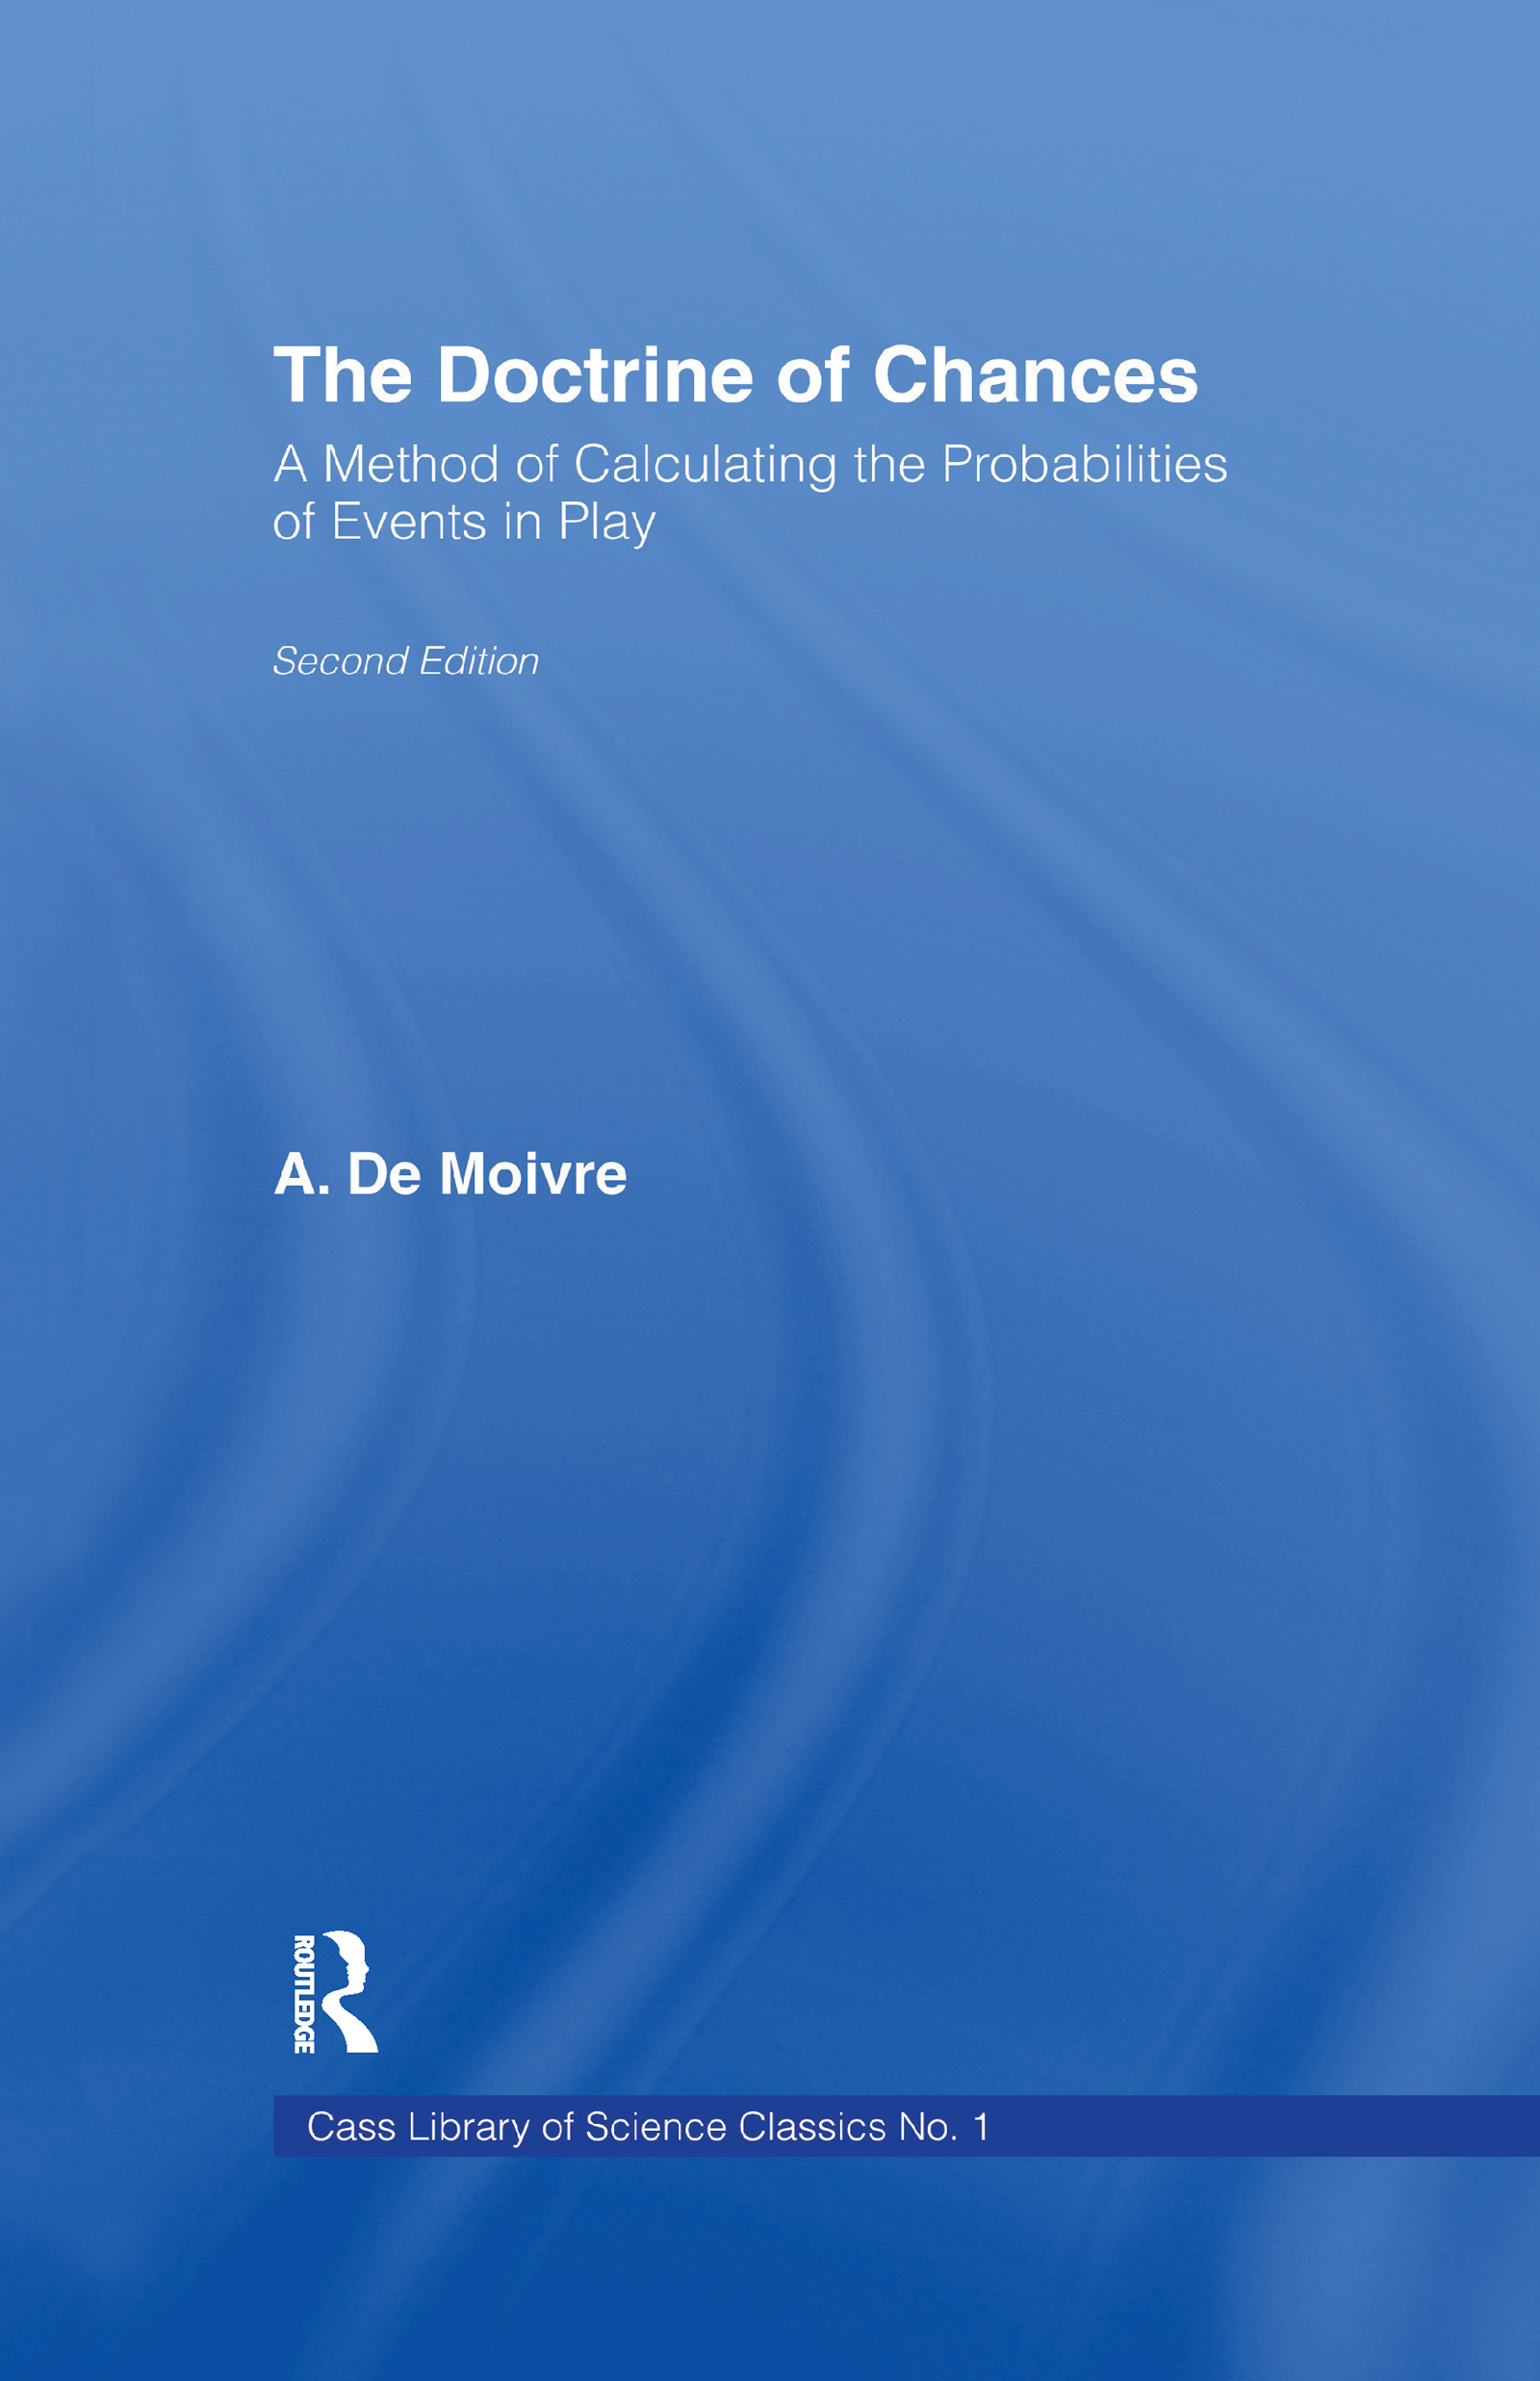 The Doctrine of Chances: A Method of Calculating the Probabilities of Events in Play book cover